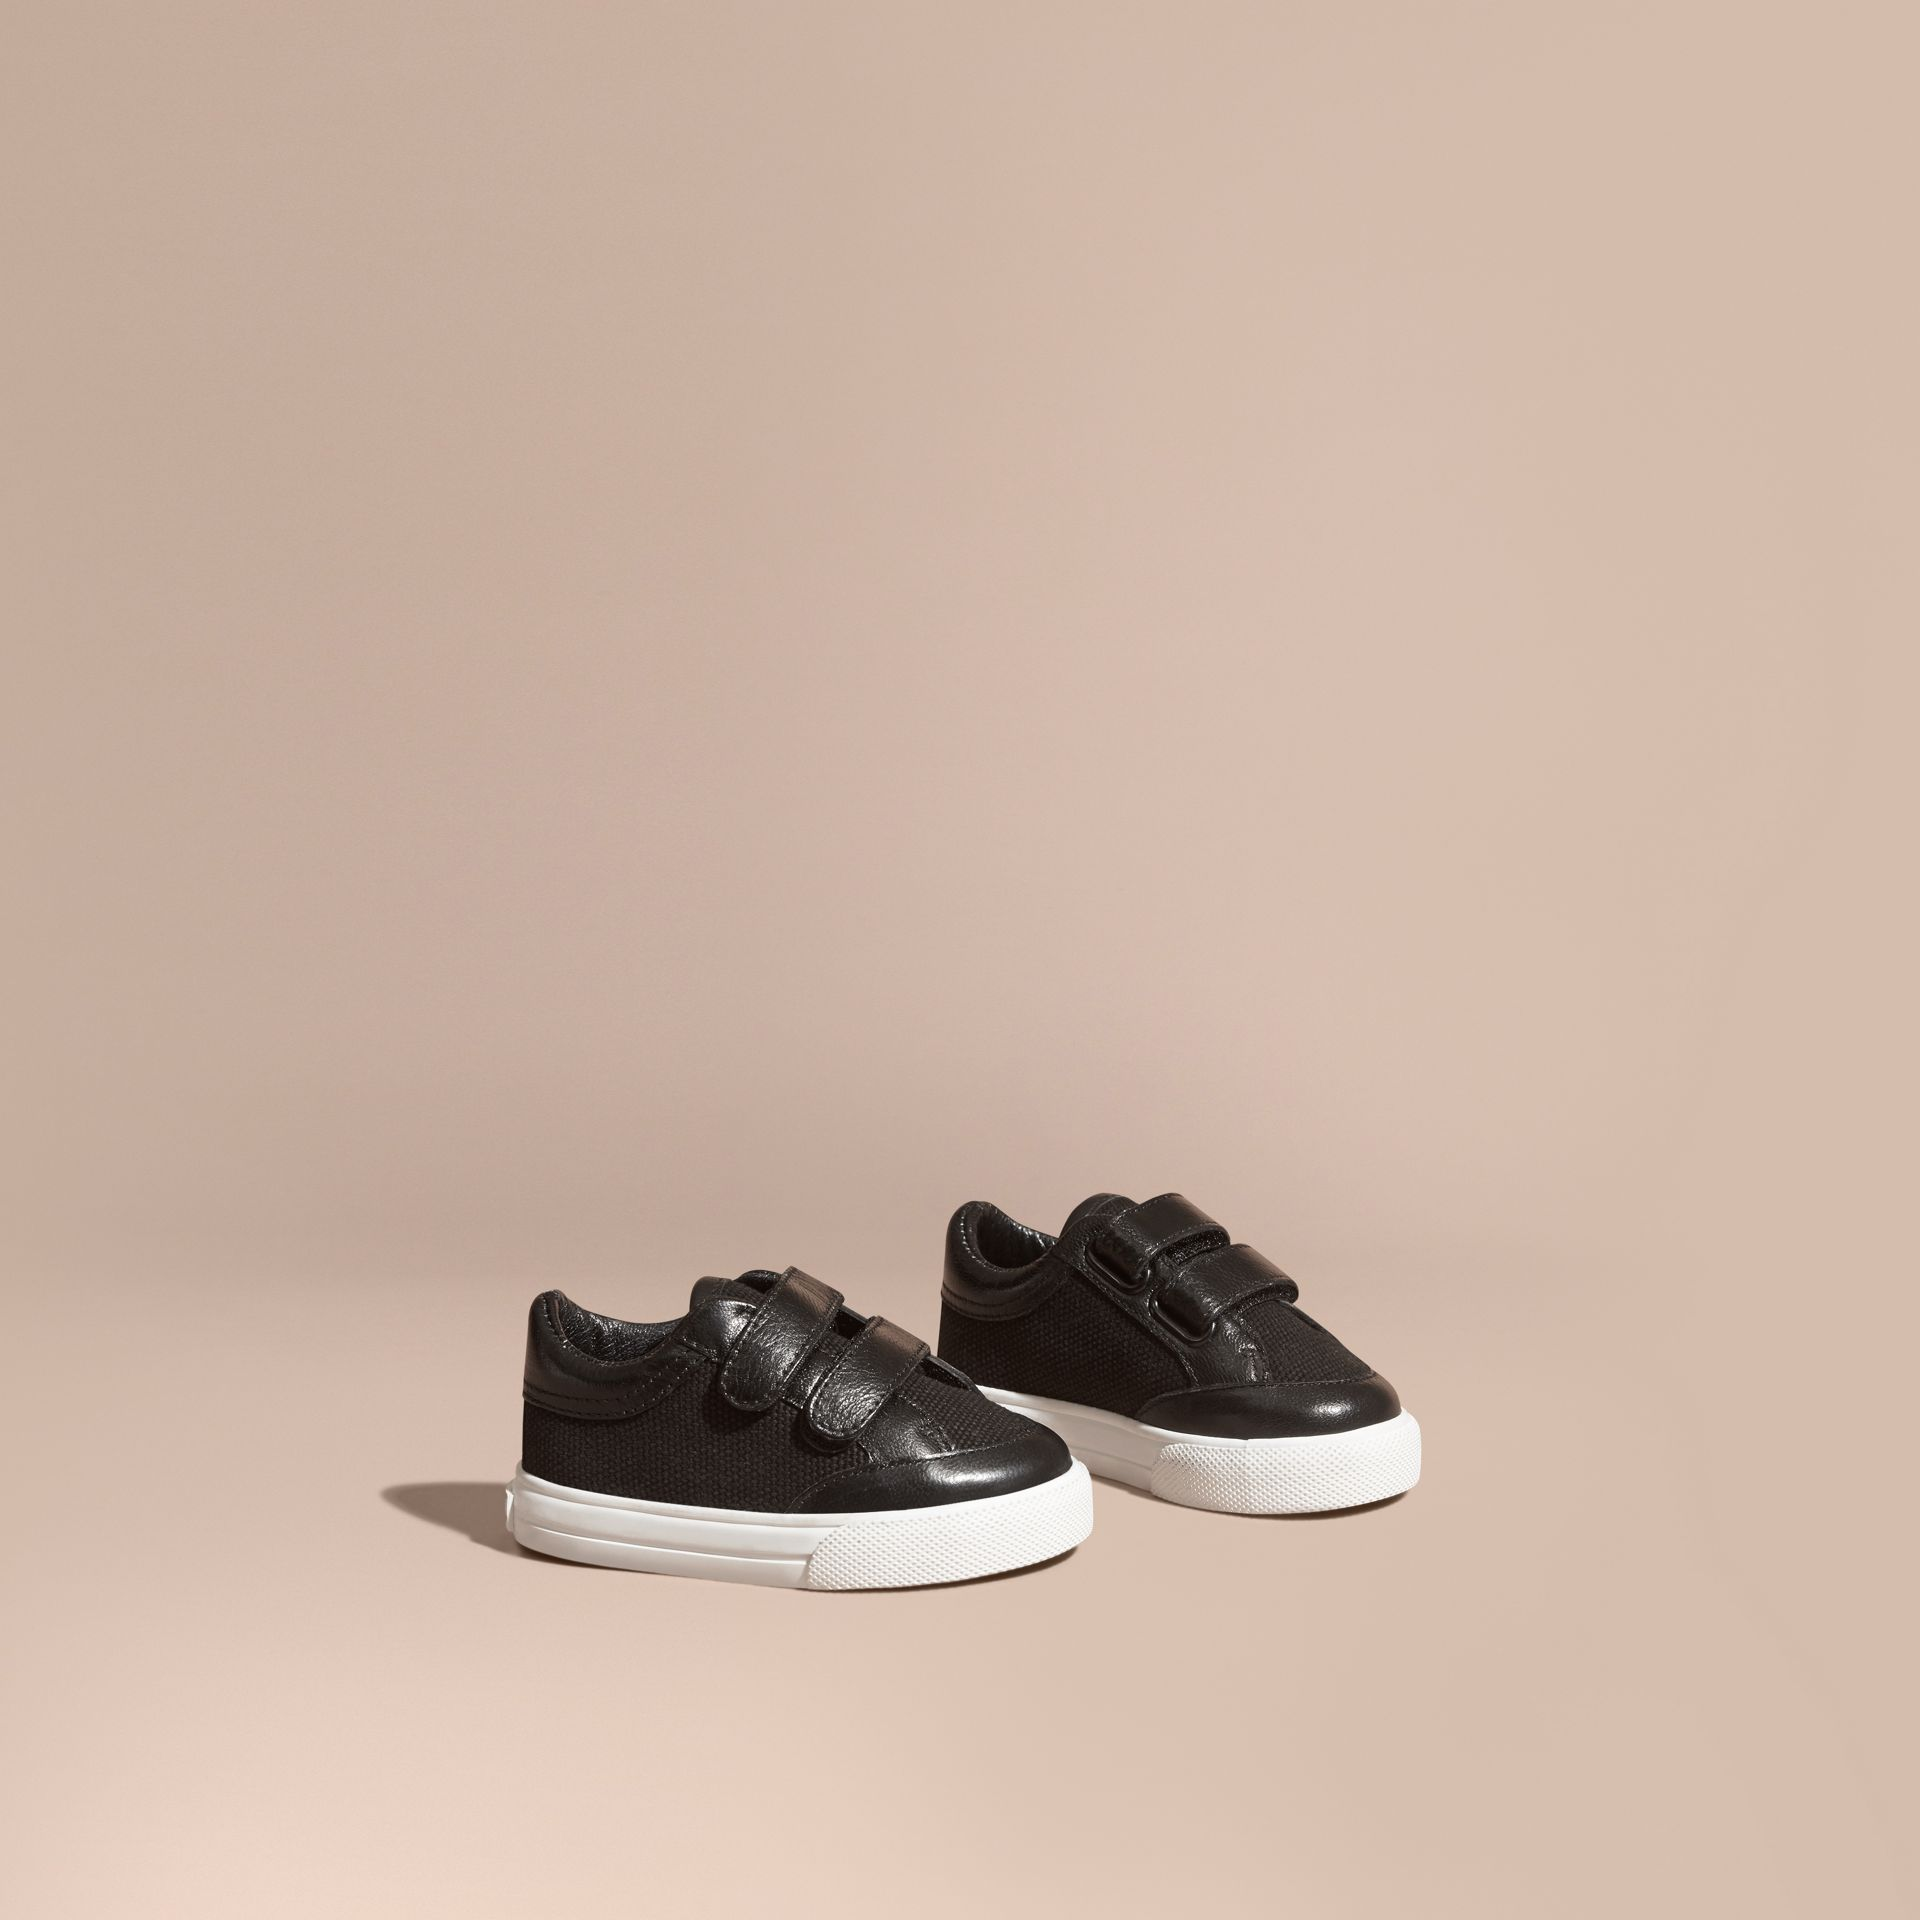 Black Leather and Canvas Trainers Black - gallery image 1